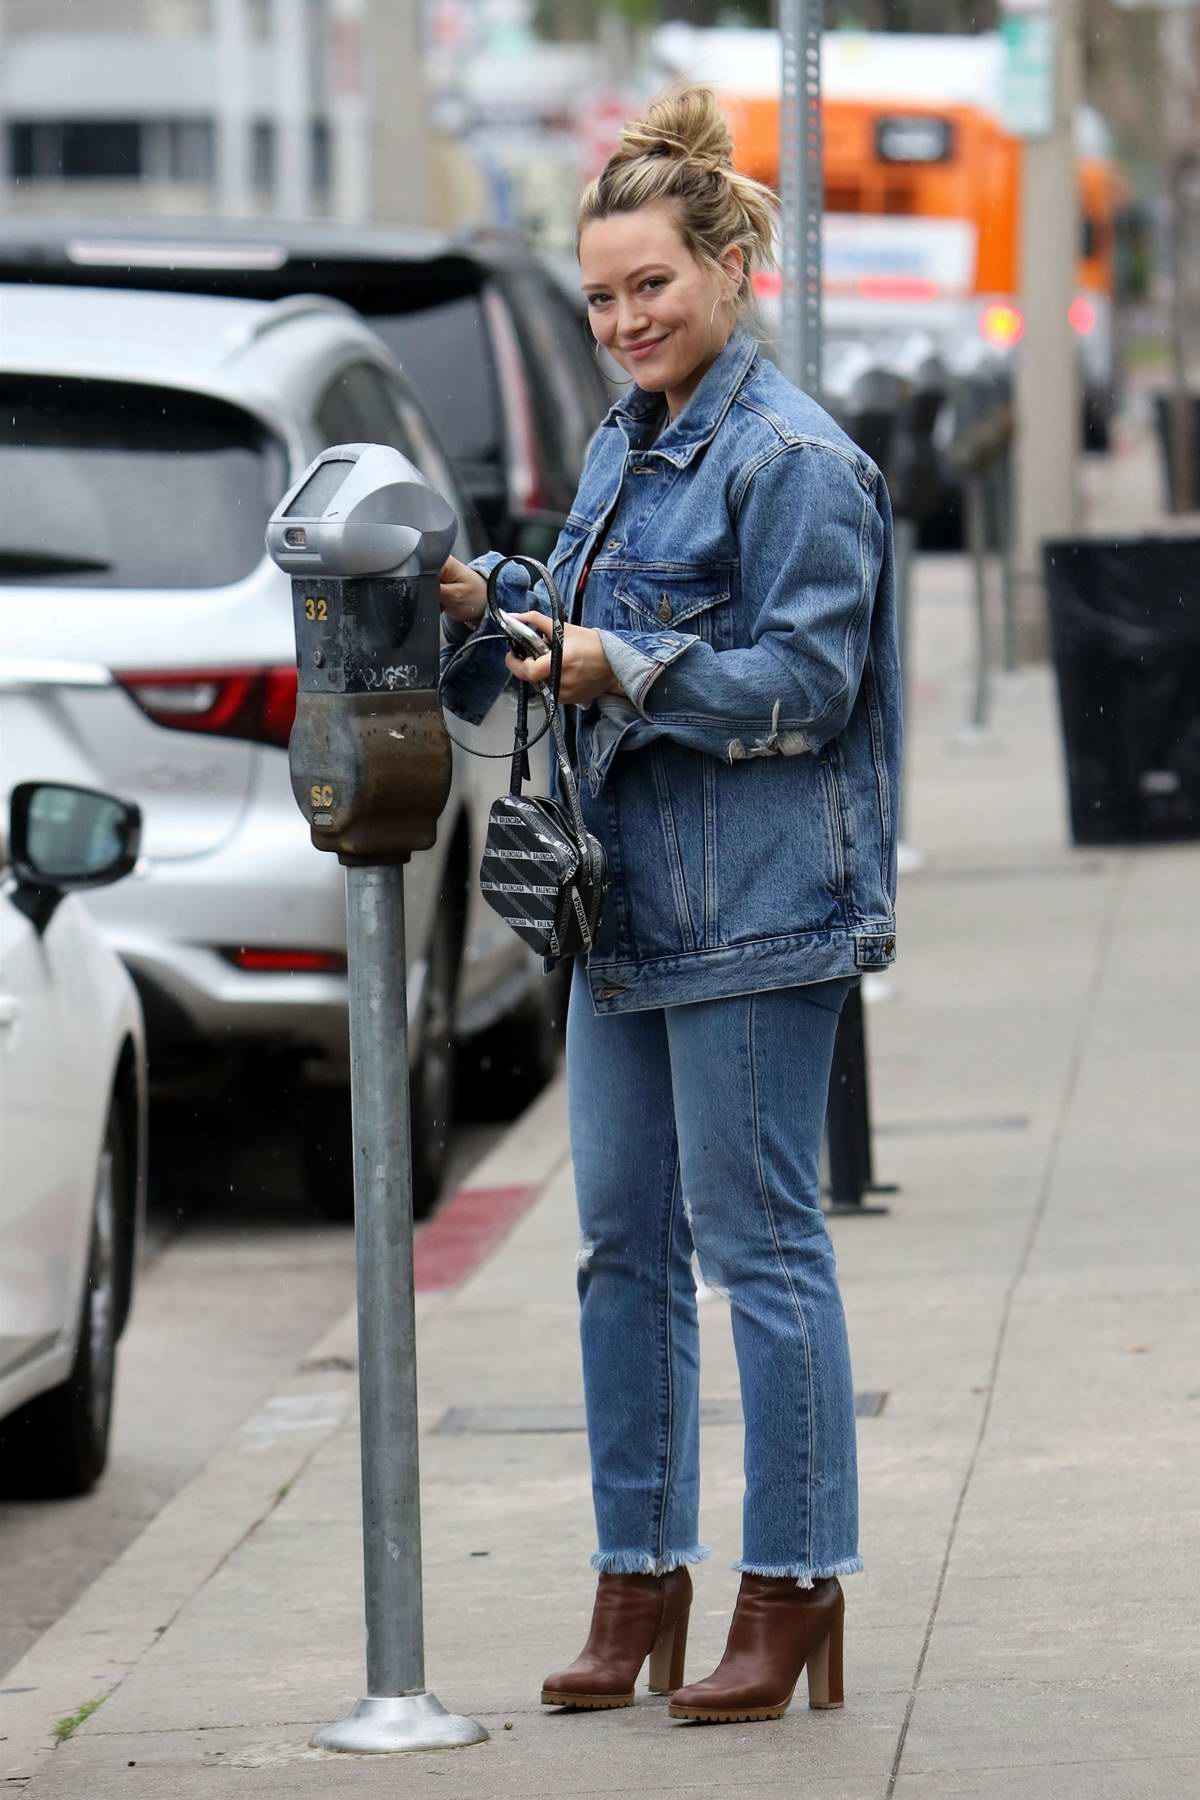 Hilary Duff rocks double denim as she steps out for coffee at Joan's On Third in Los Angeles